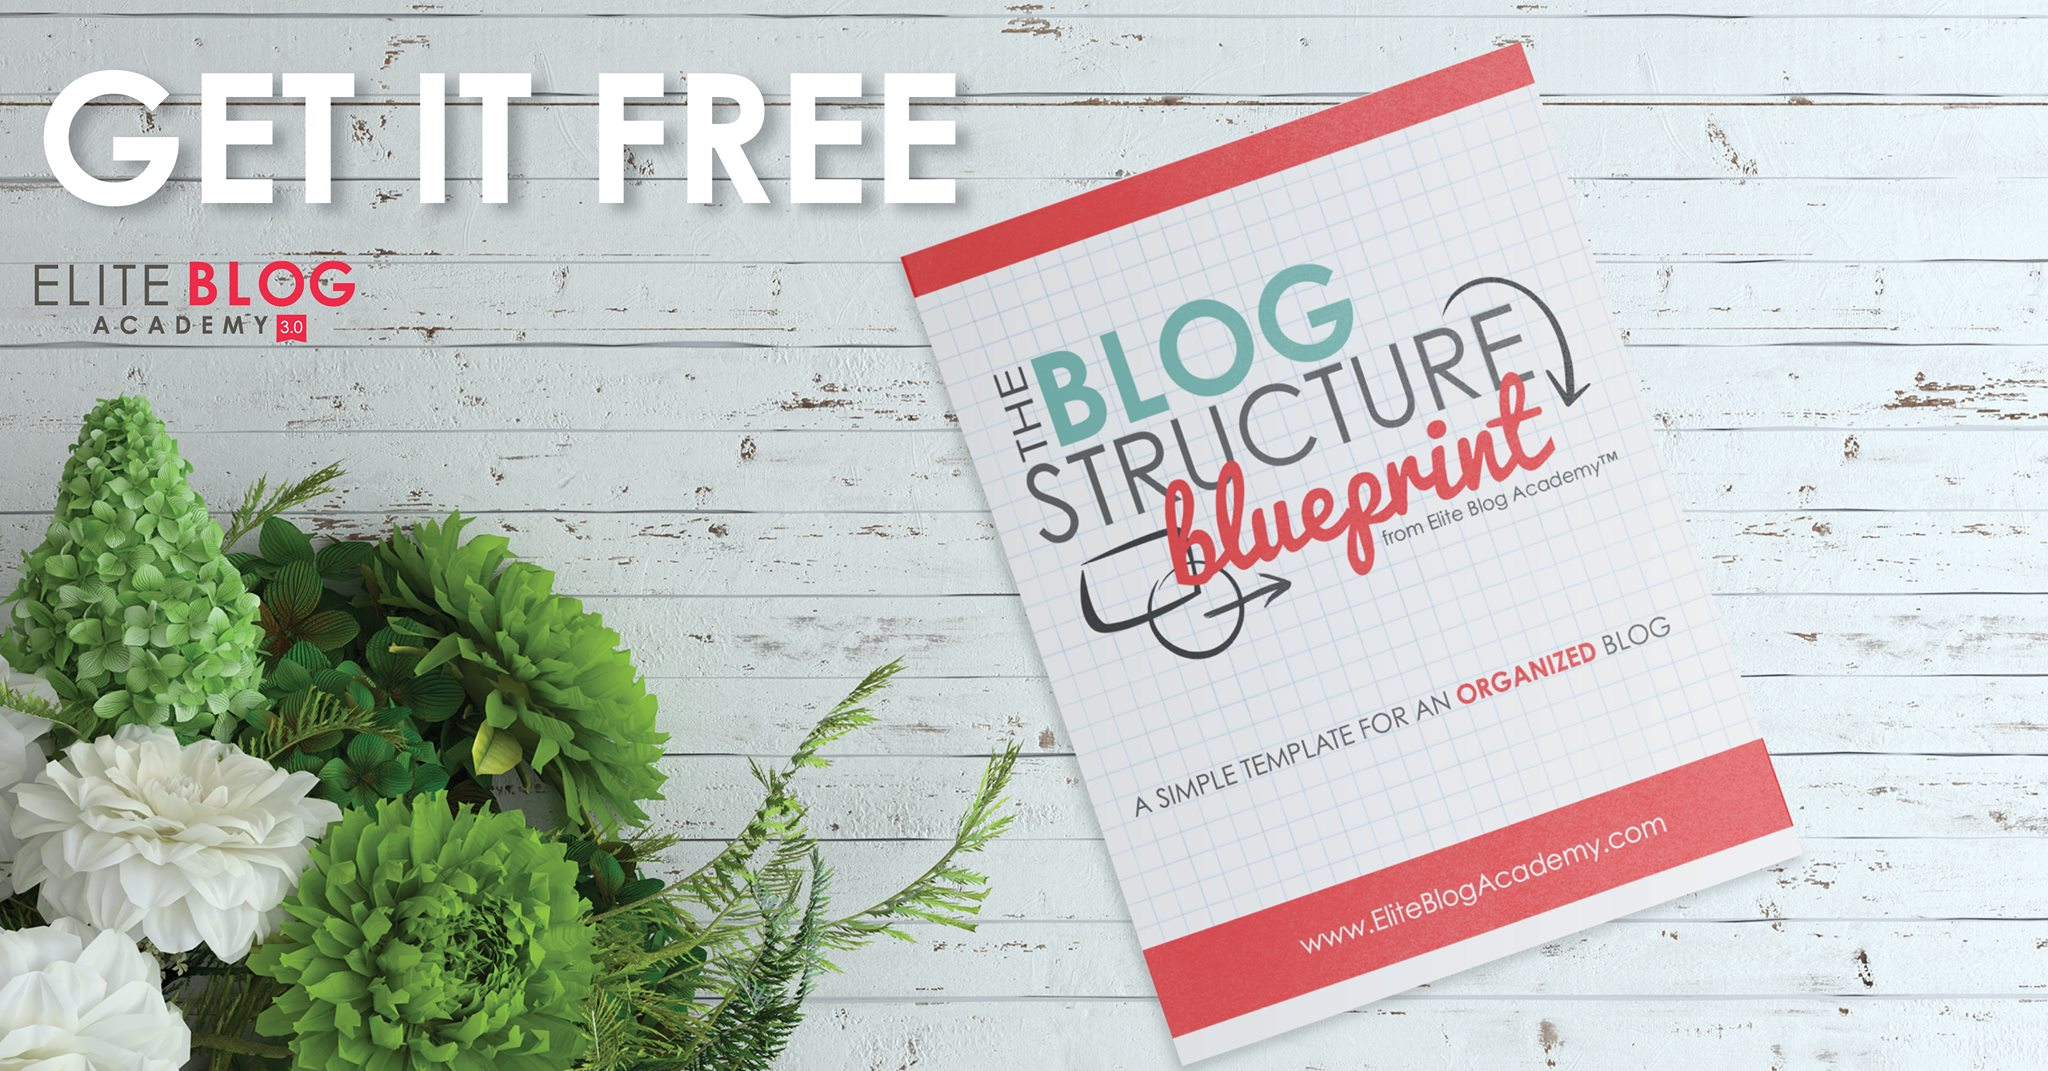 Get the Blog Structure Blueprint from Elite Blog Academy to help you organize your blog - totally free!